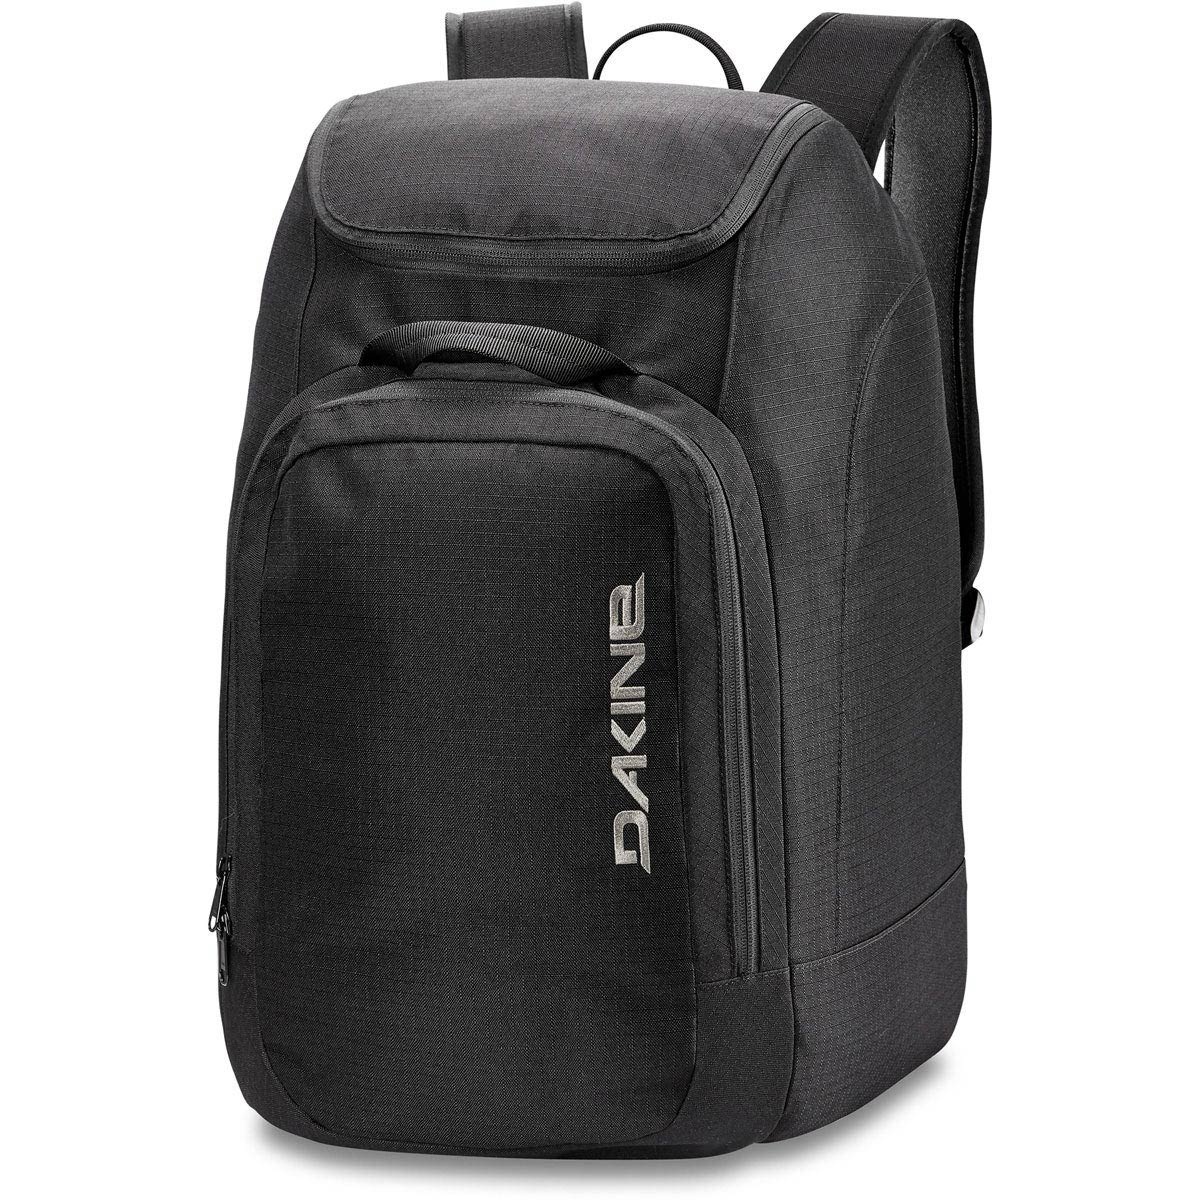 Front View - Dakine Boot Pack 50L - Black